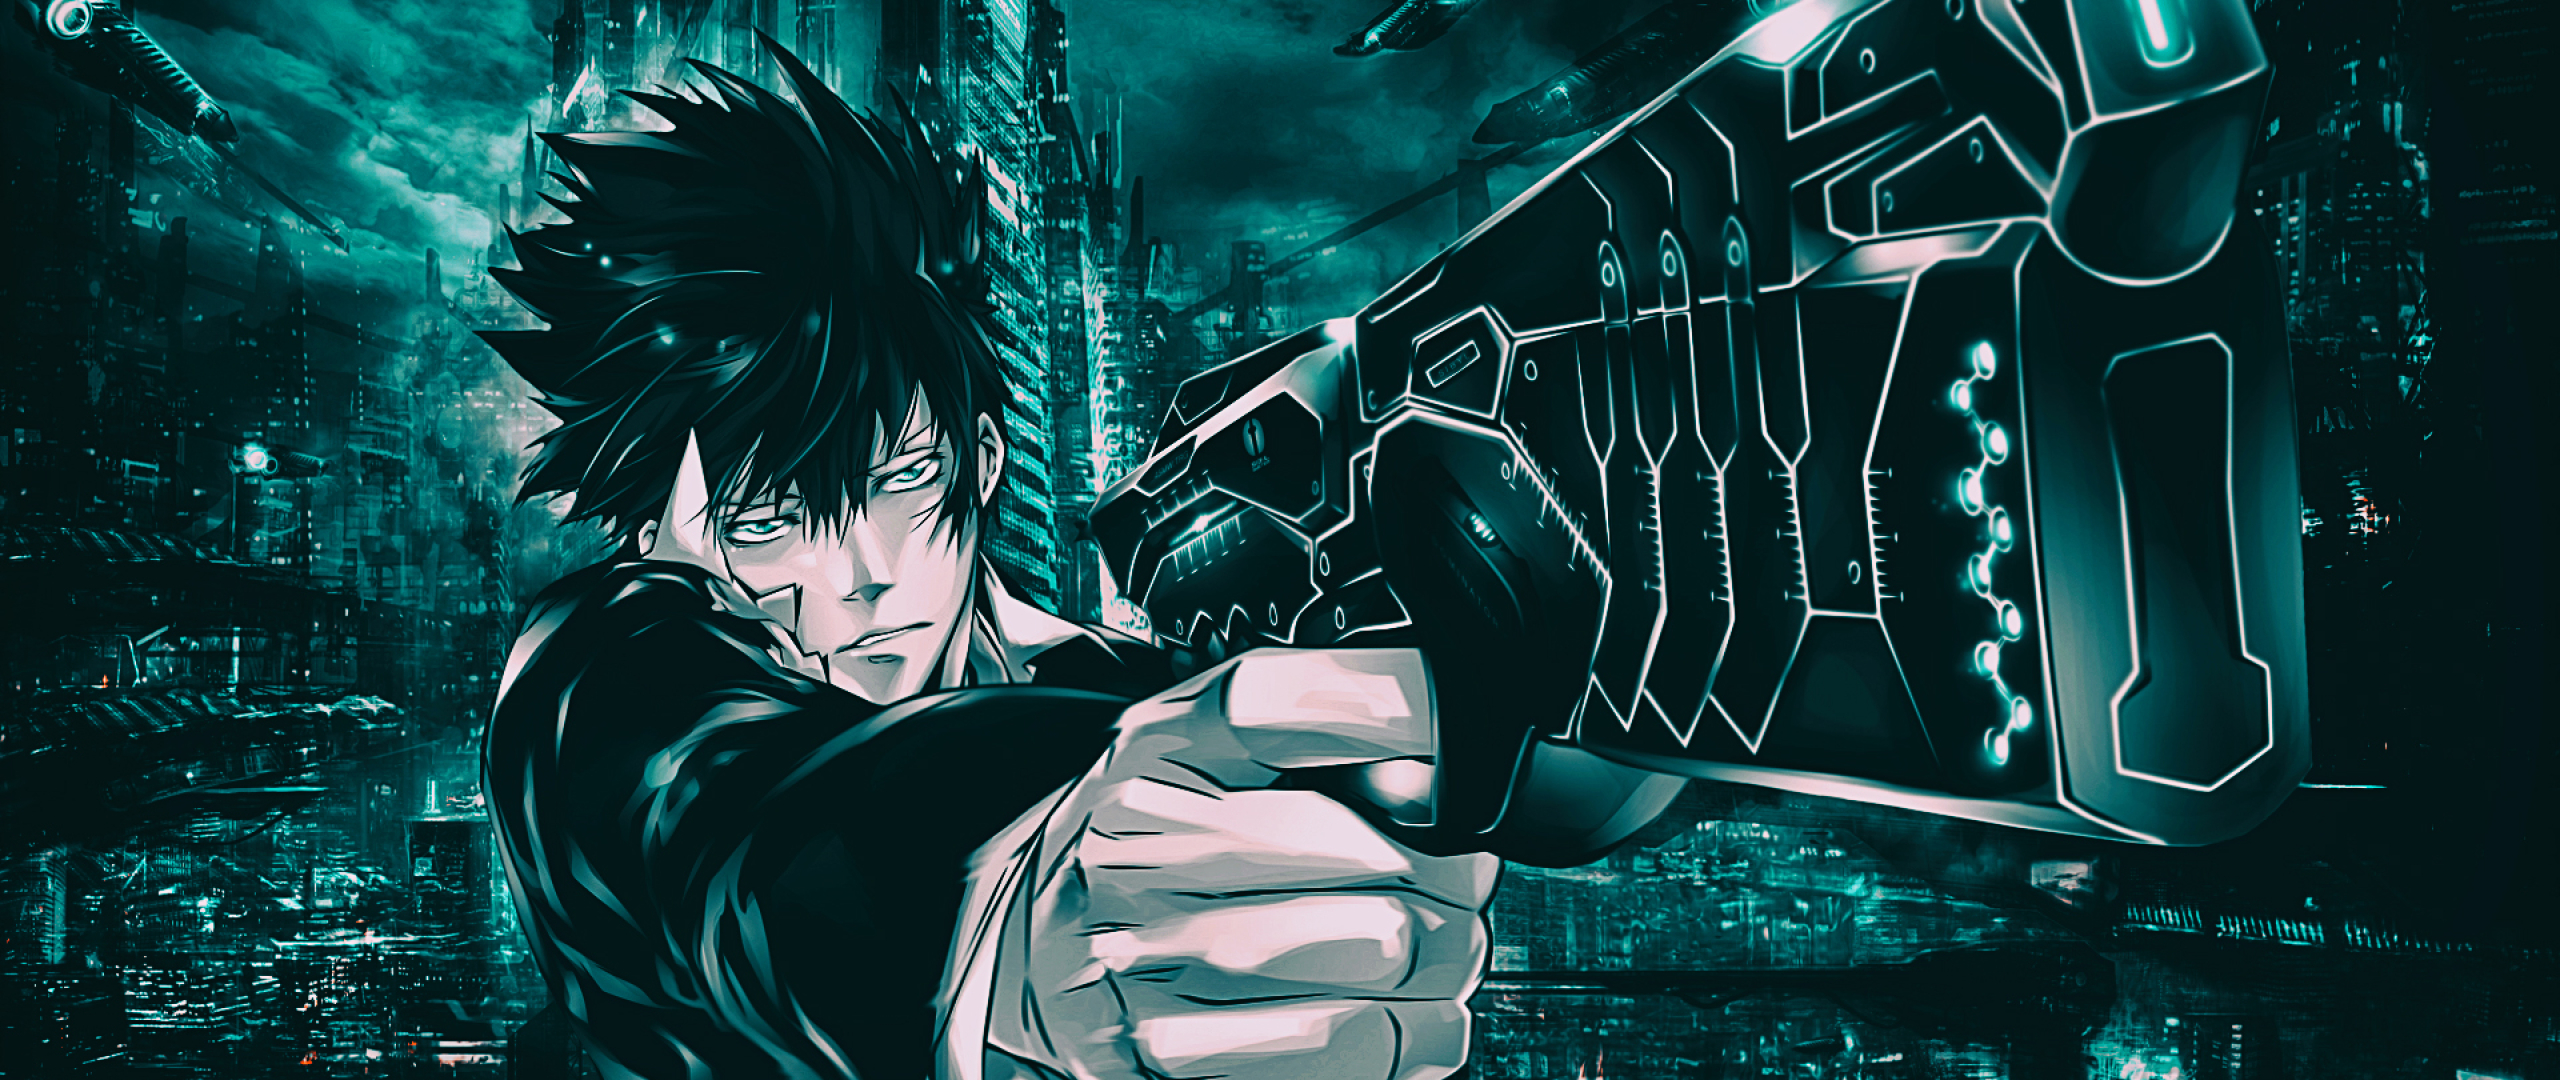 2560x1080 Shinya Kogami From Psycho Pass 2560x1080 Resolution